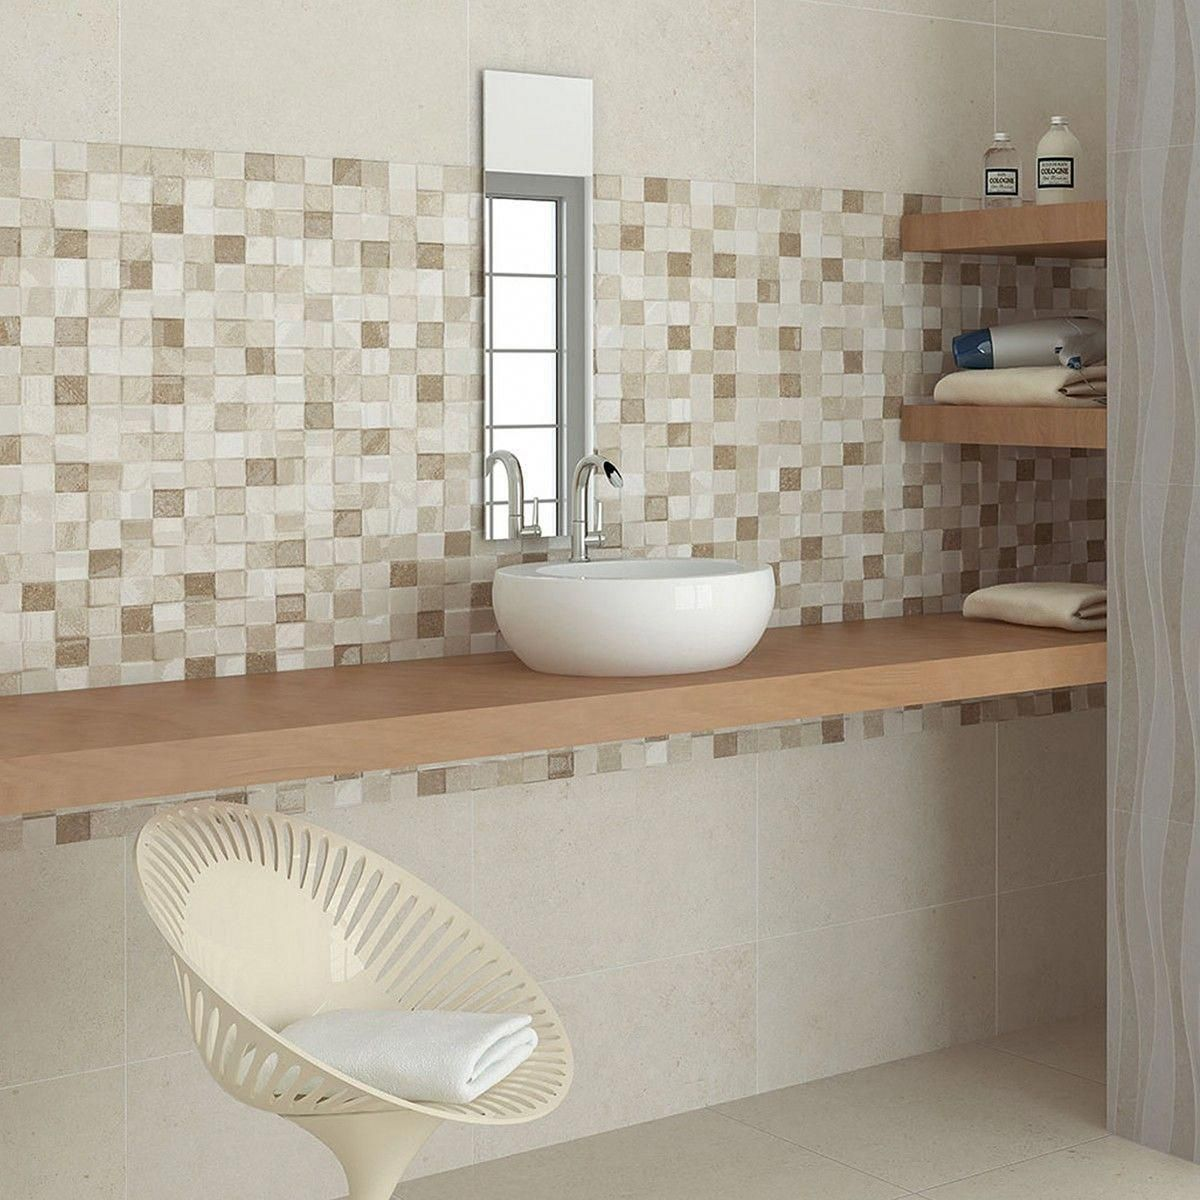 Idea Tricks Also Guide With Regard To Getting The Ideal Result And Also Making The Optimum Usage Of Bathroom In 2020 With Images Room Tiles Design Tile Bathroom Mosaic Bathroom